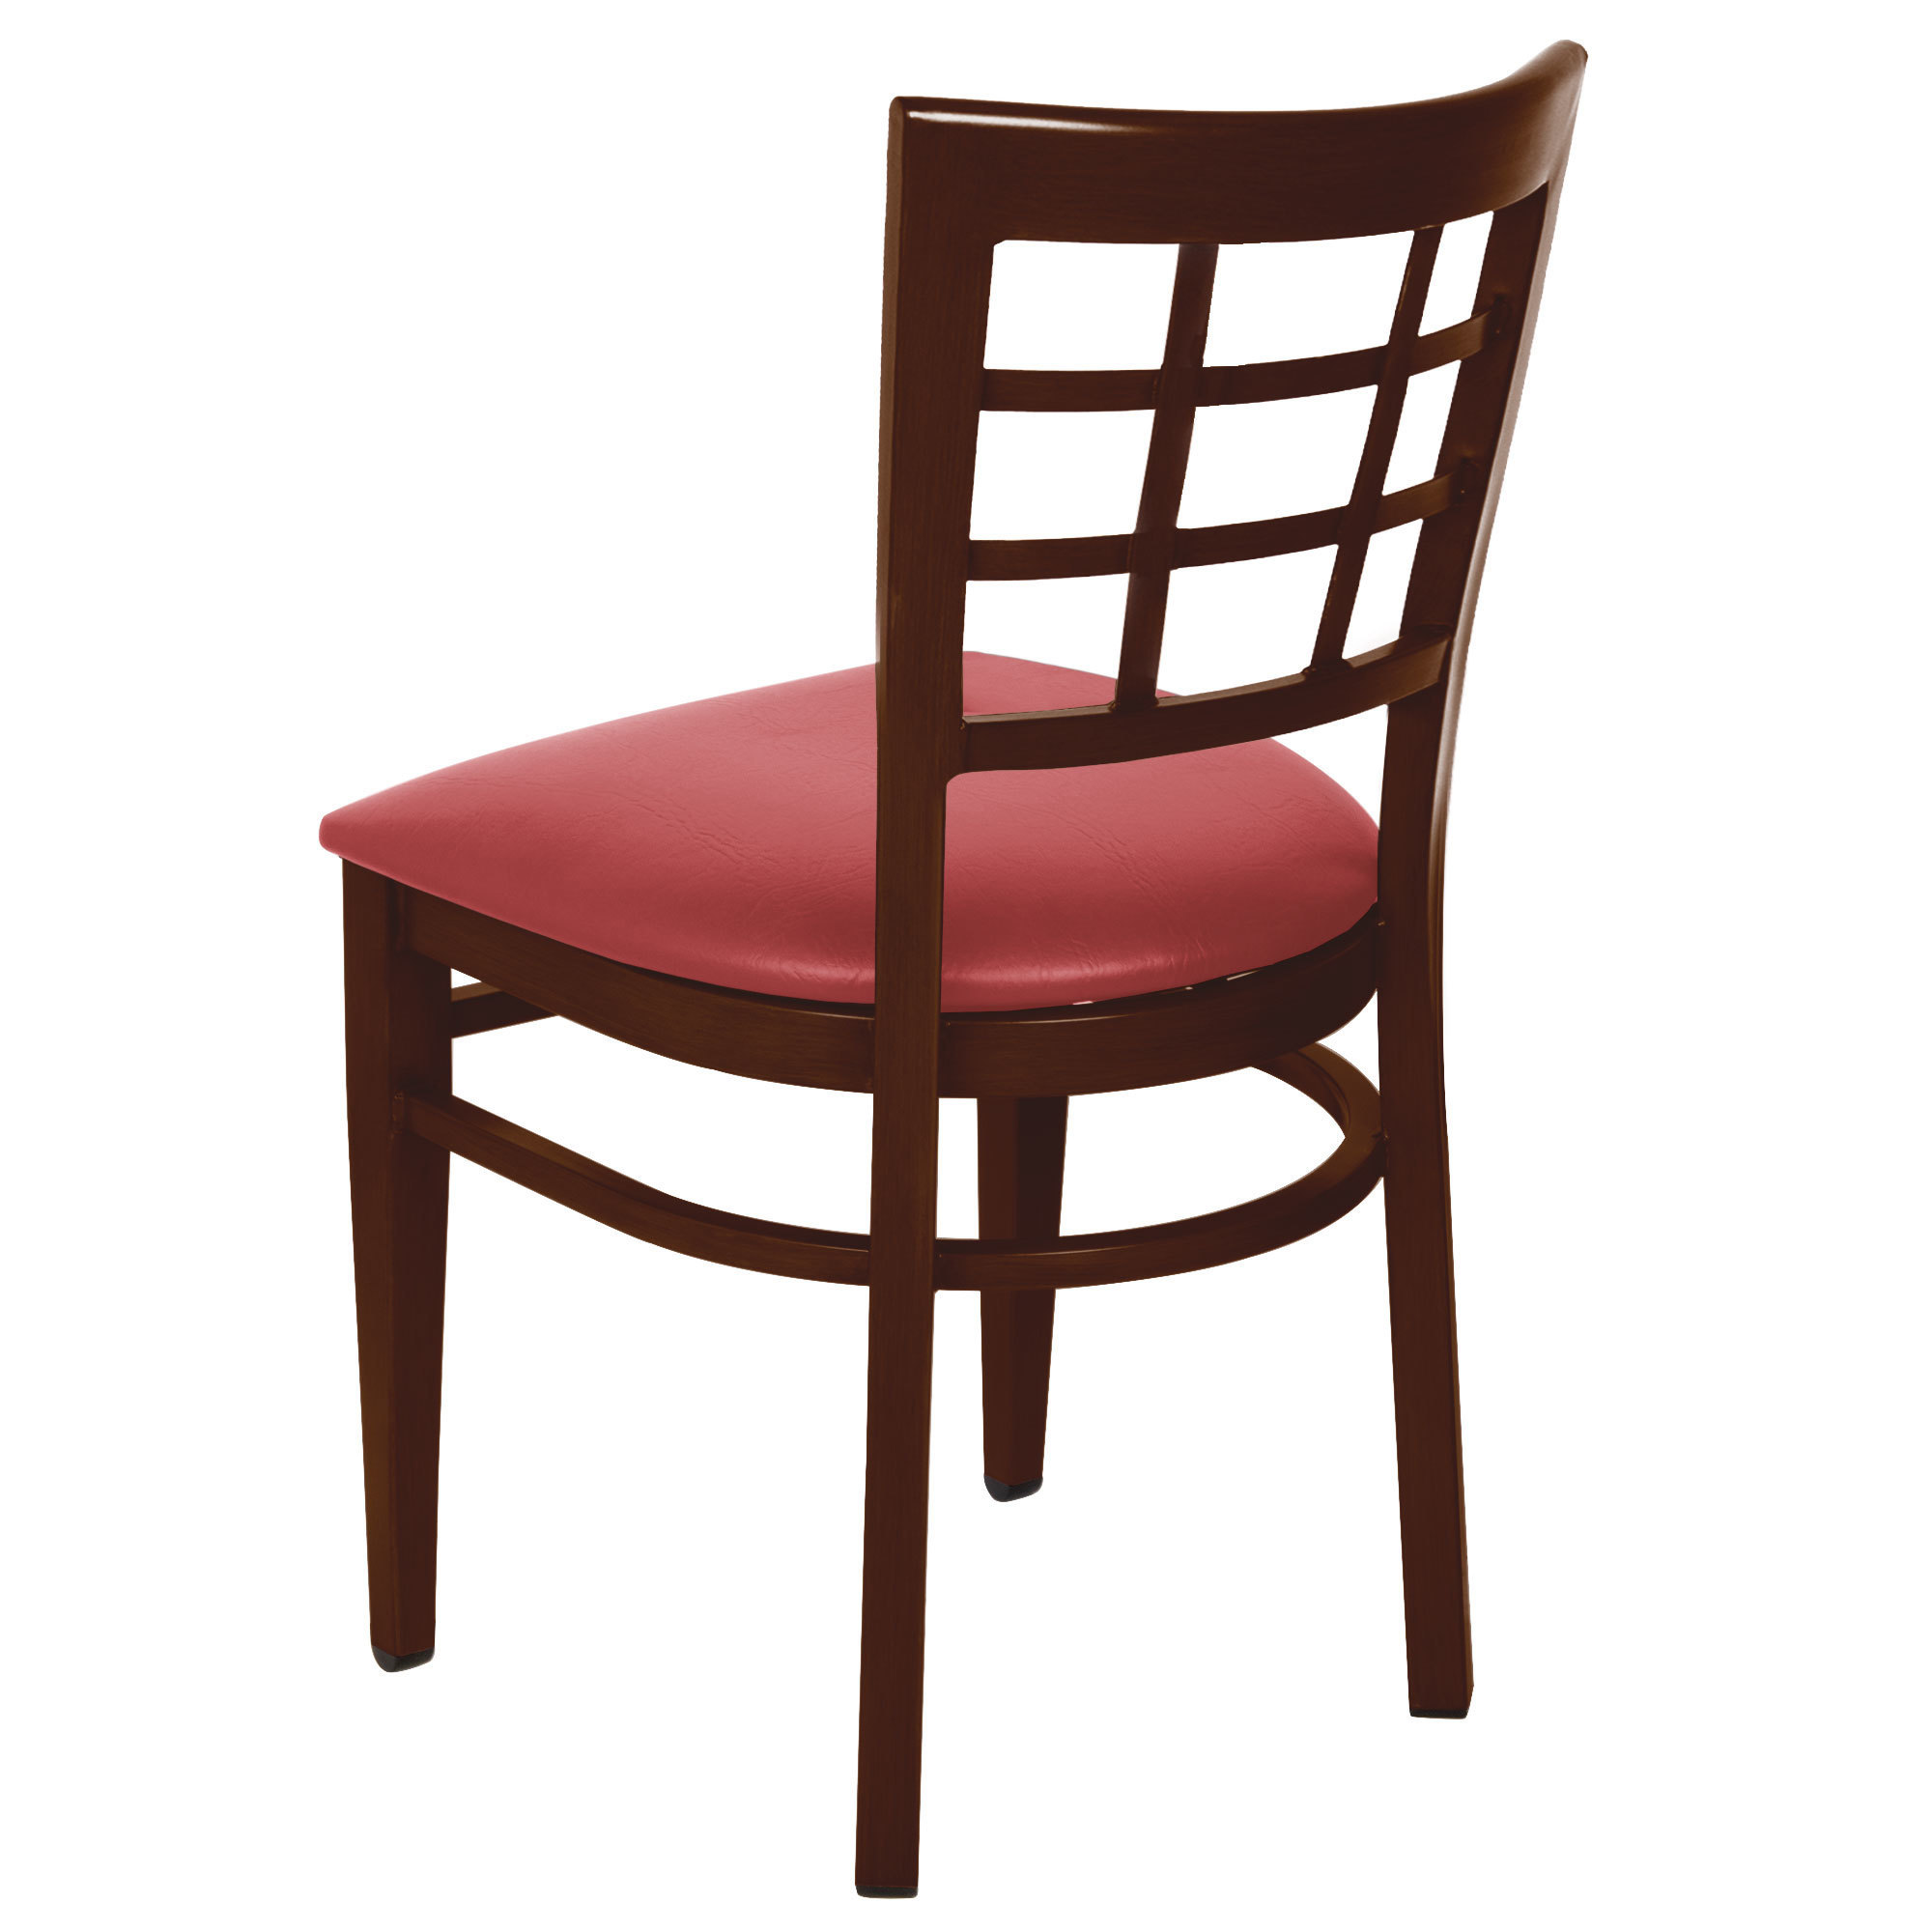 #170 - Window Back Design Metal Restaurant Chair with Walnut Wood Grain Finish and Red Vinyl Seat